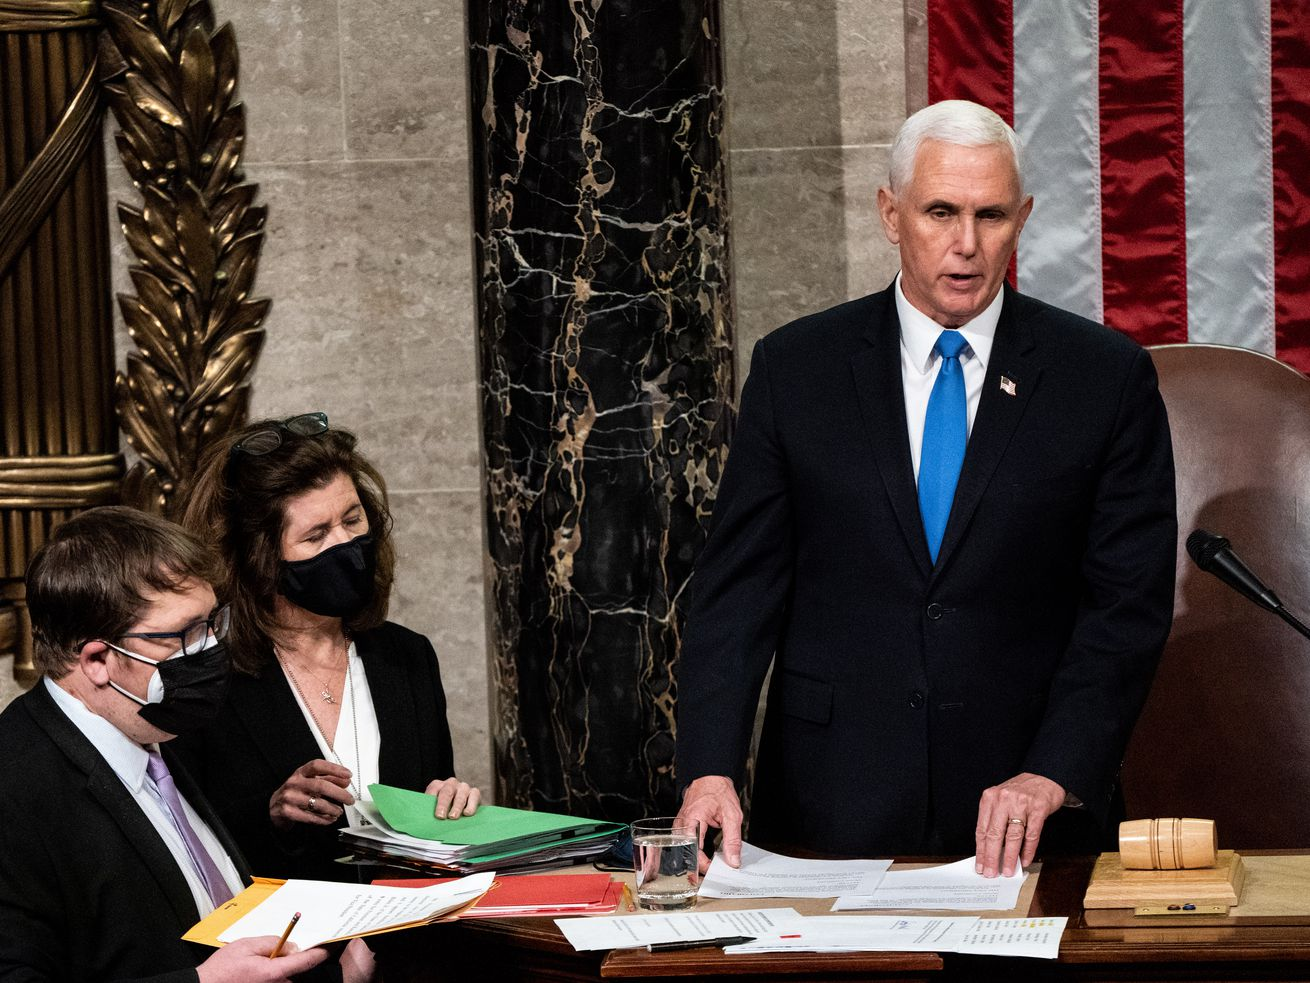 Pence, in a dark suit, white shirt, and bright blue tie, stands in the House speaker's podium, front of a giant US flag. Aides hand him papers.